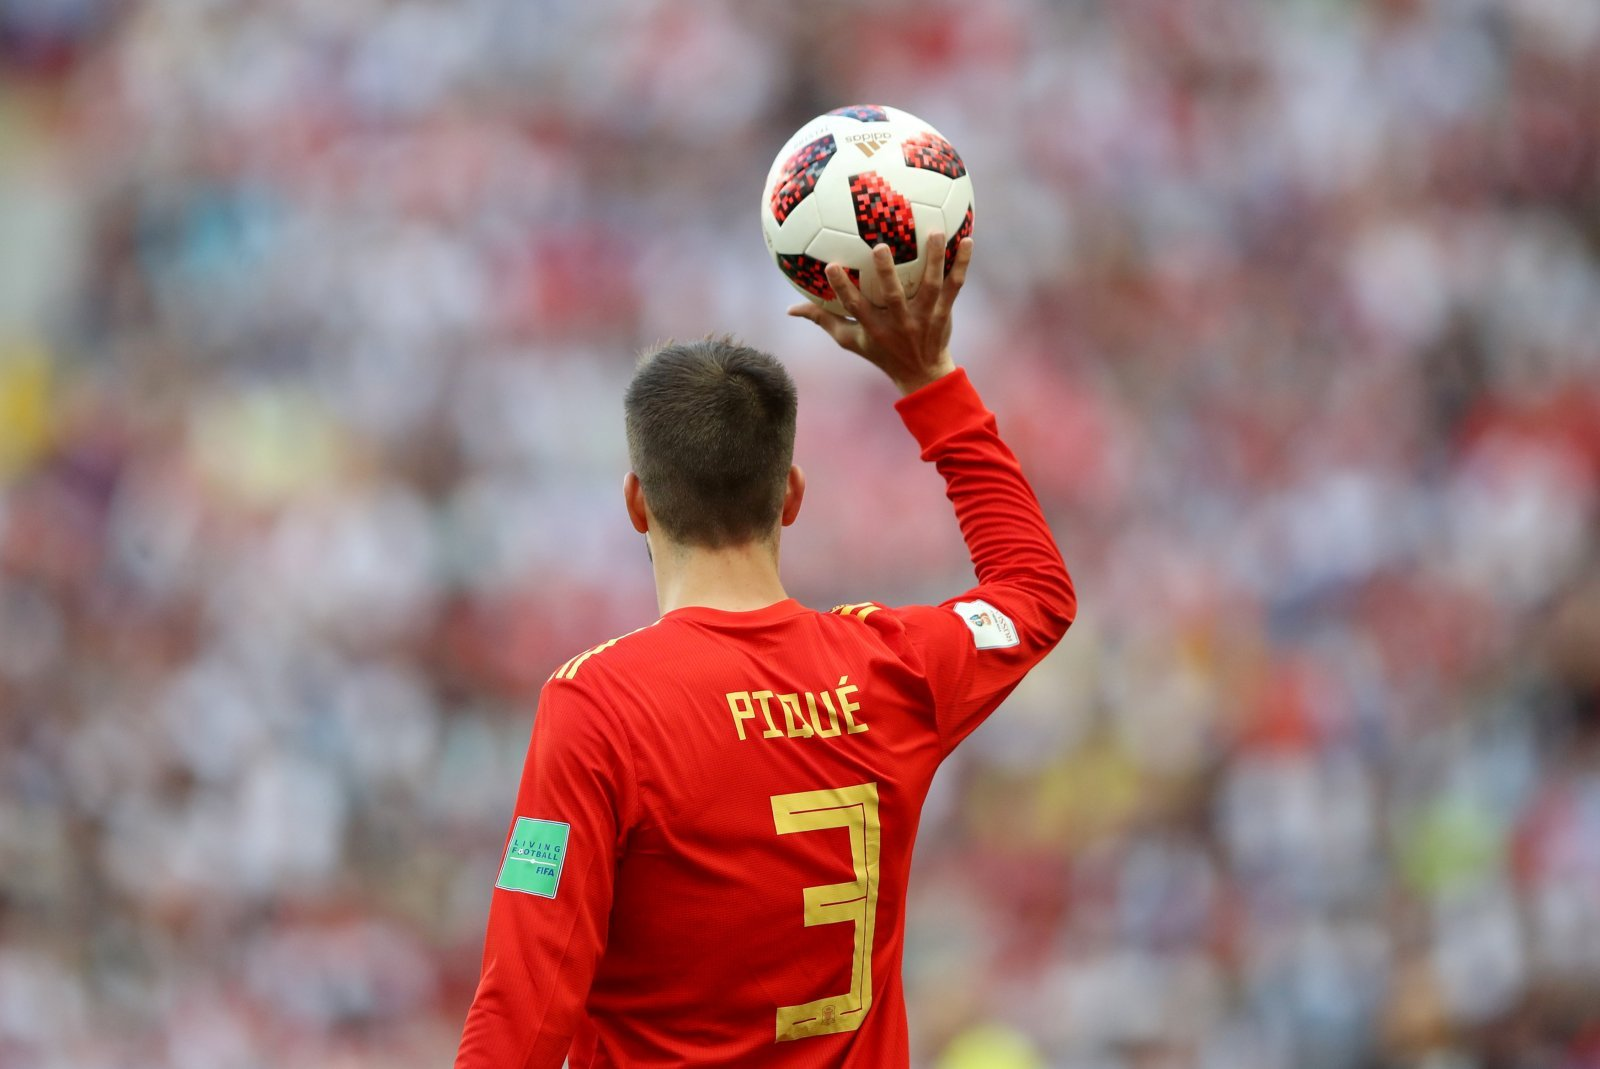 Lenglet signing should prompt Man United into bringing Pique back to Old Trafford